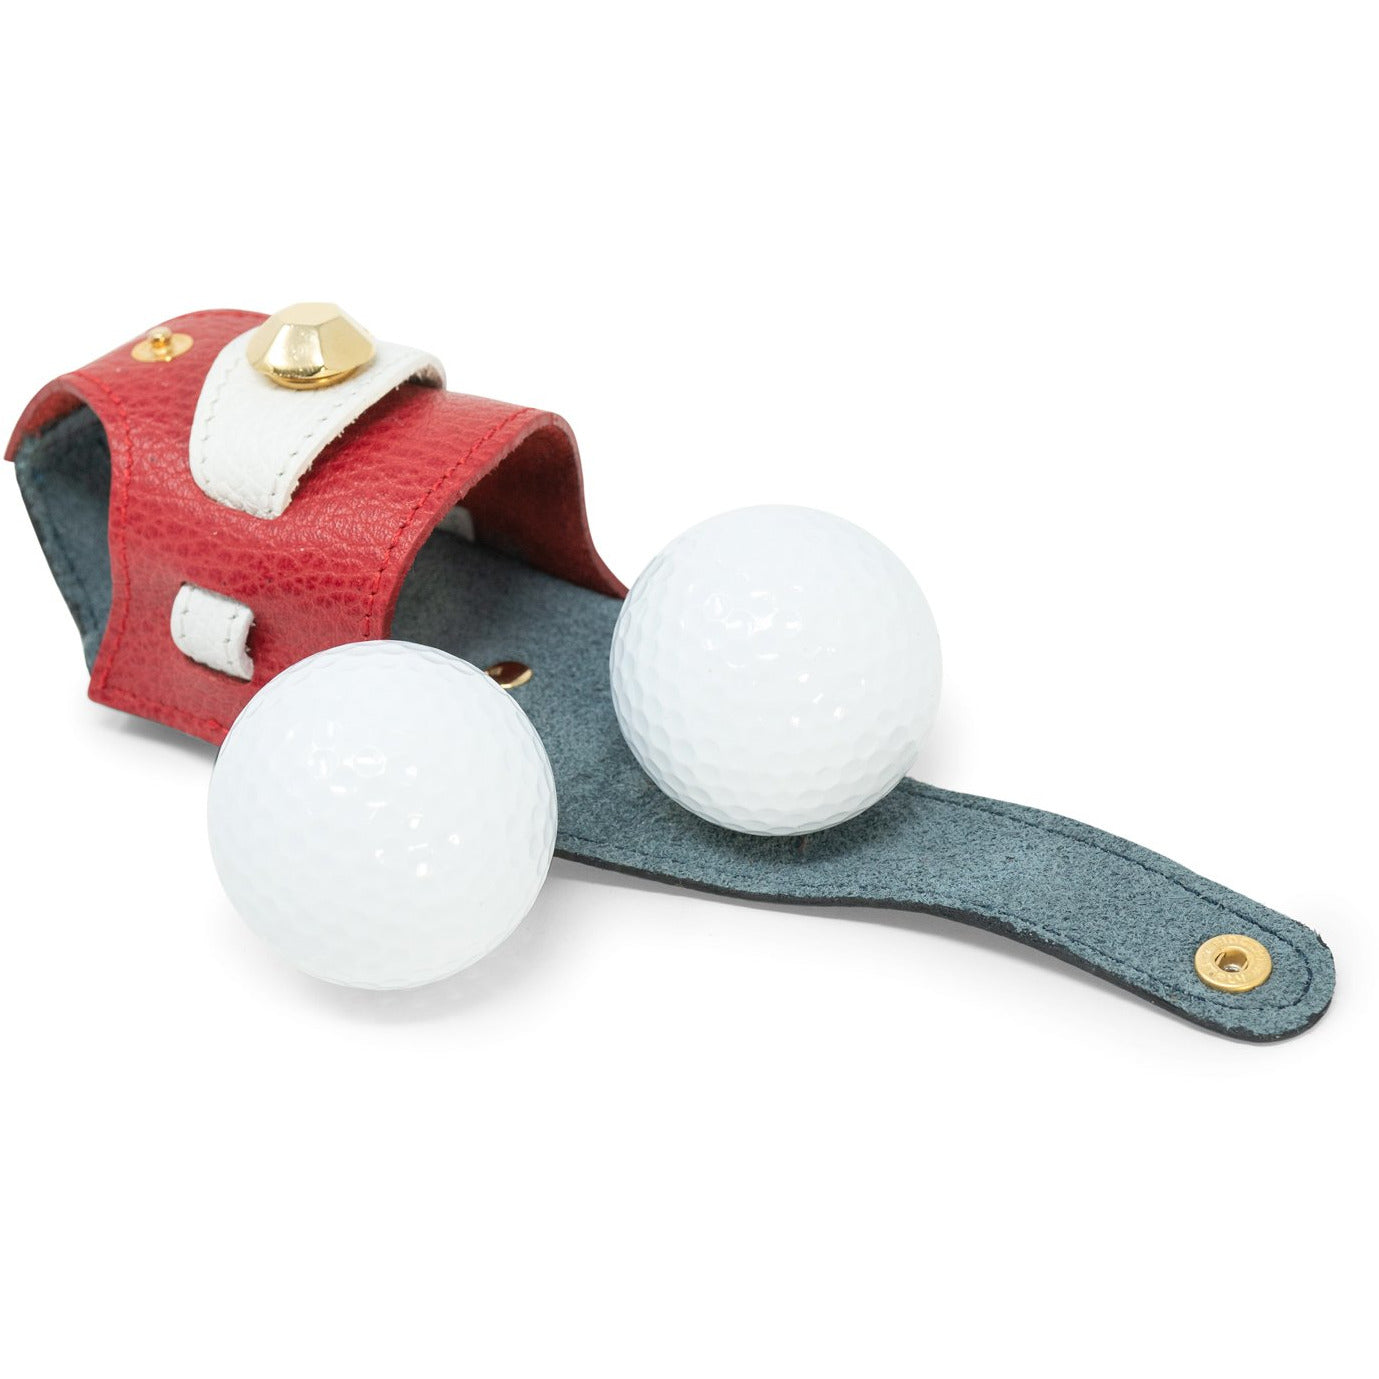 Leather 2 golf balls holder JT352 6046 - Jennifer Tattanelli